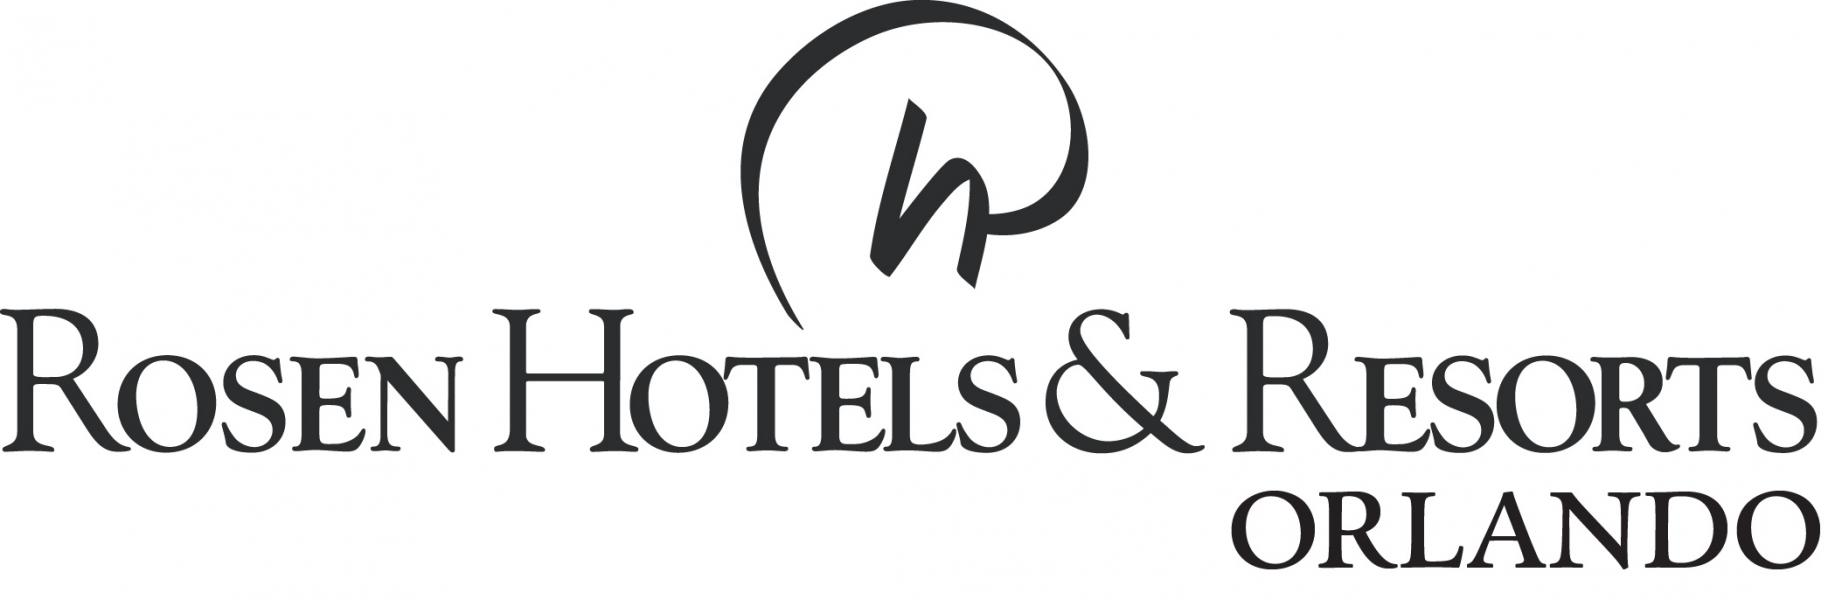 Rosen Hotels & Resorts Orlando logotipo (preto)